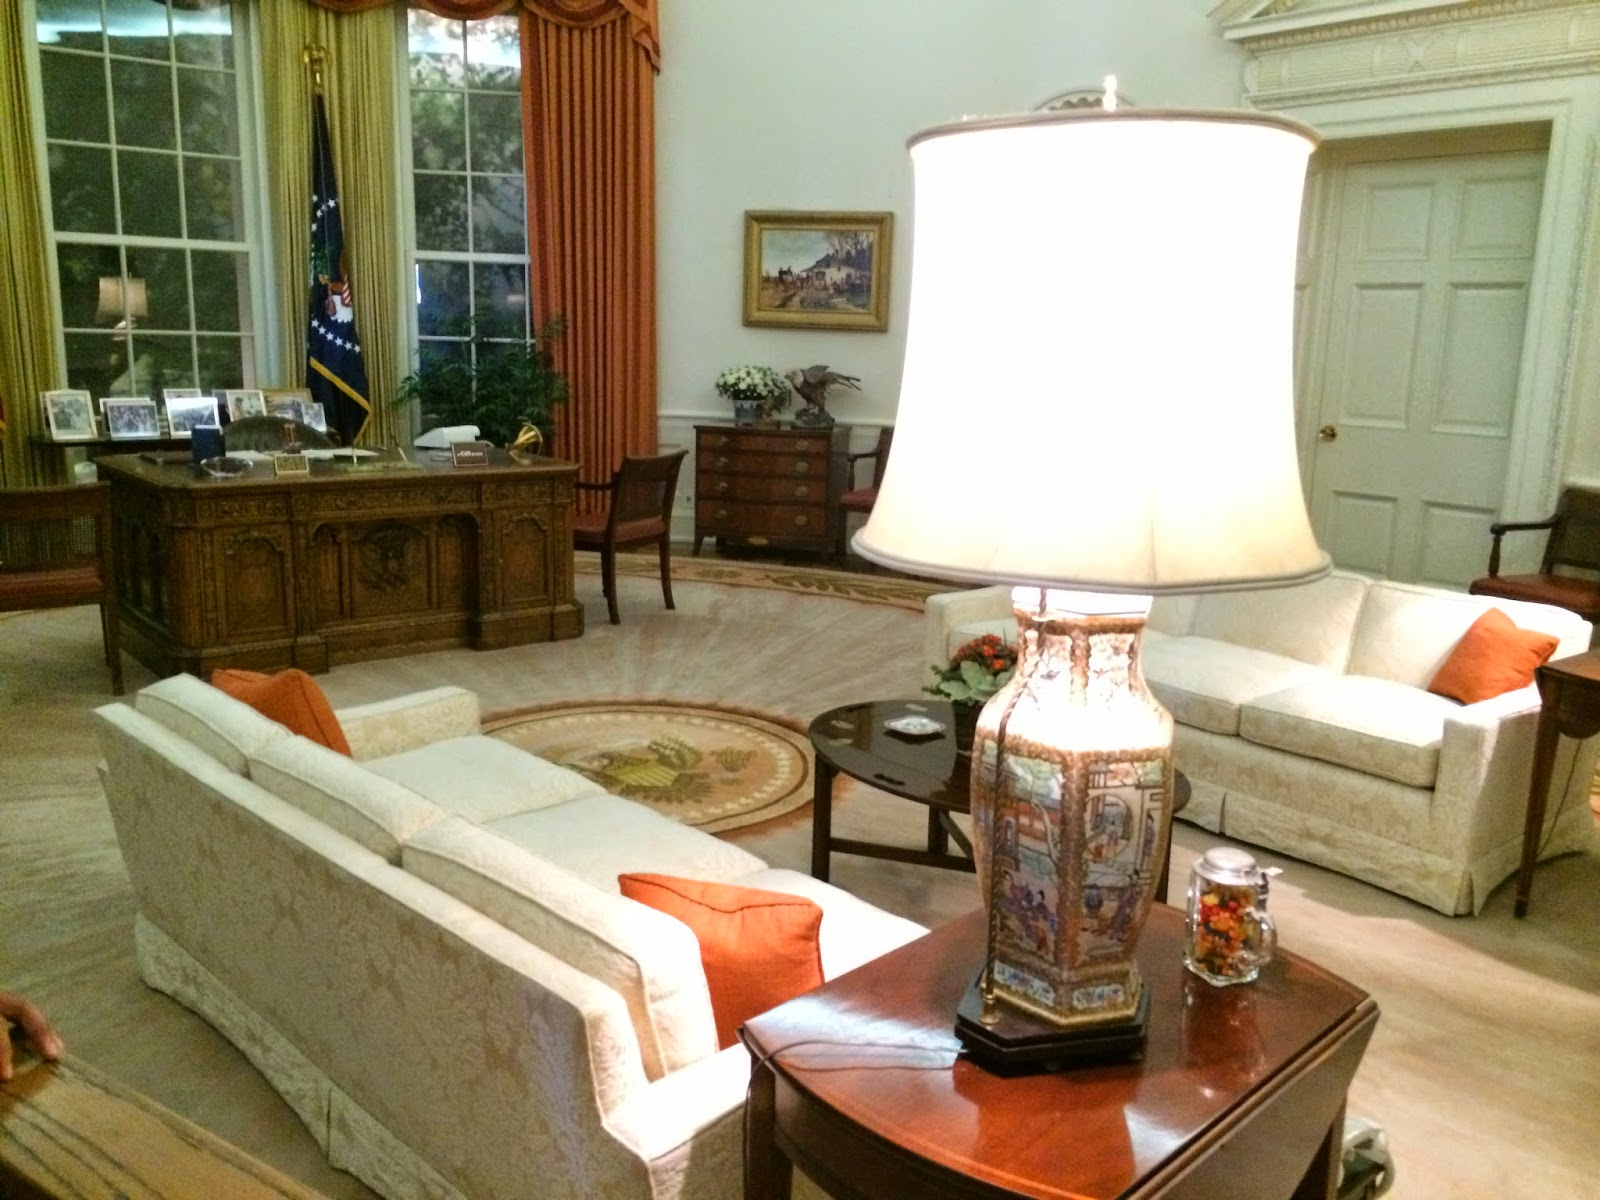 reagan oval office. Air Force One Was On Display In A Large Hangar. You Could Walk Through The Plane, But Pictures Of Interior Were Not Allowed. Reagan Oval Office